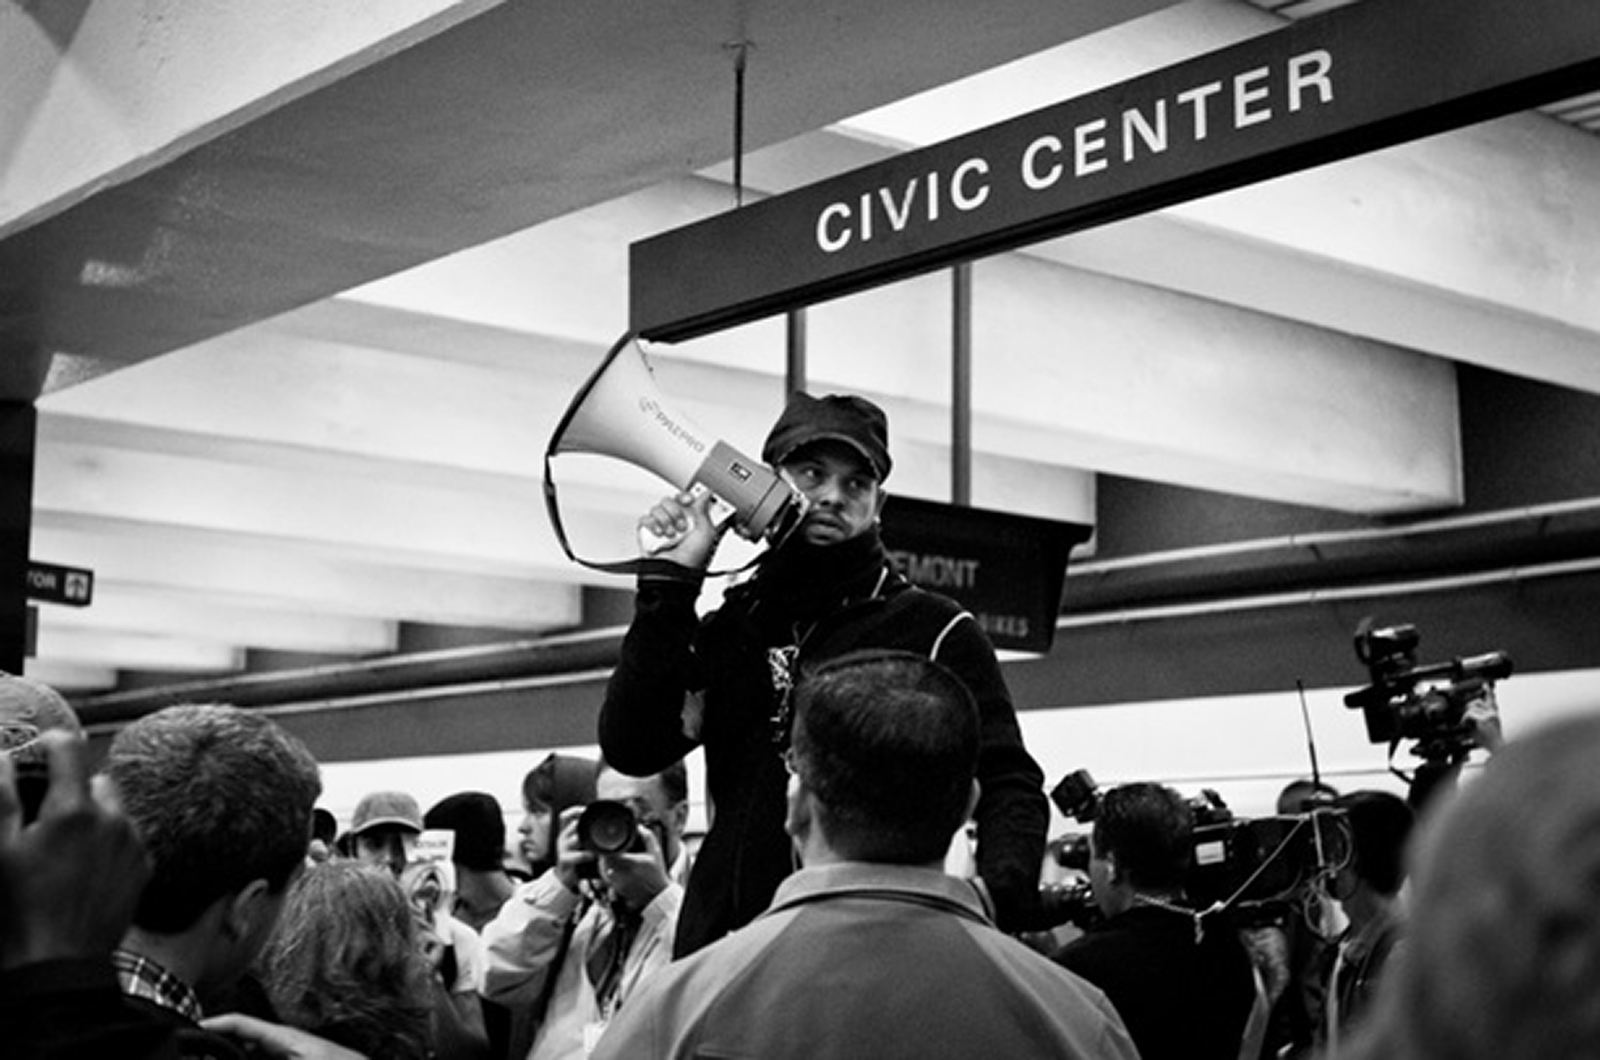 Scenes from the Civic Center BART Protest